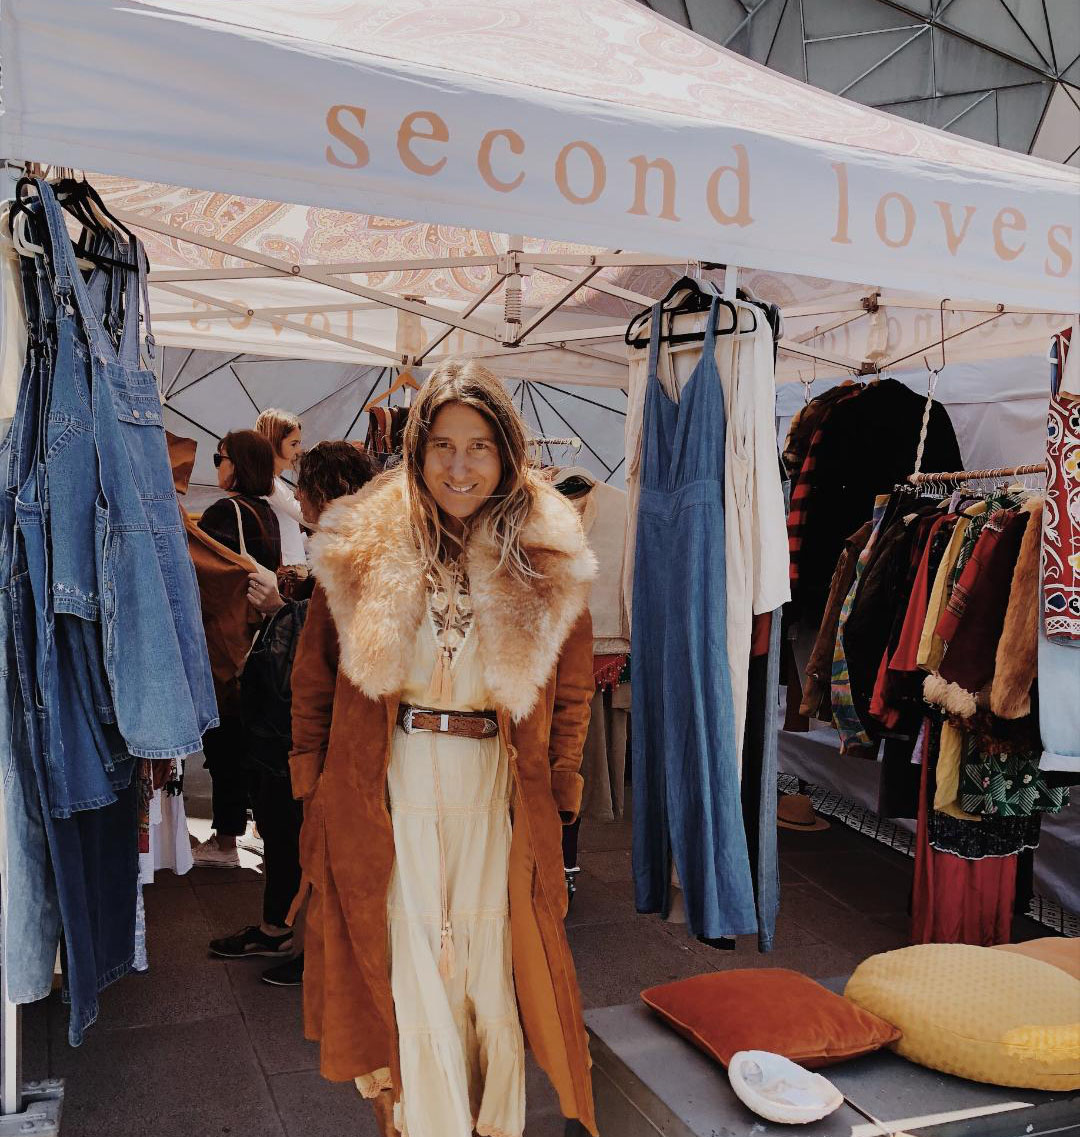 Second Loves Vintage https://www.secondlovesvintage.com